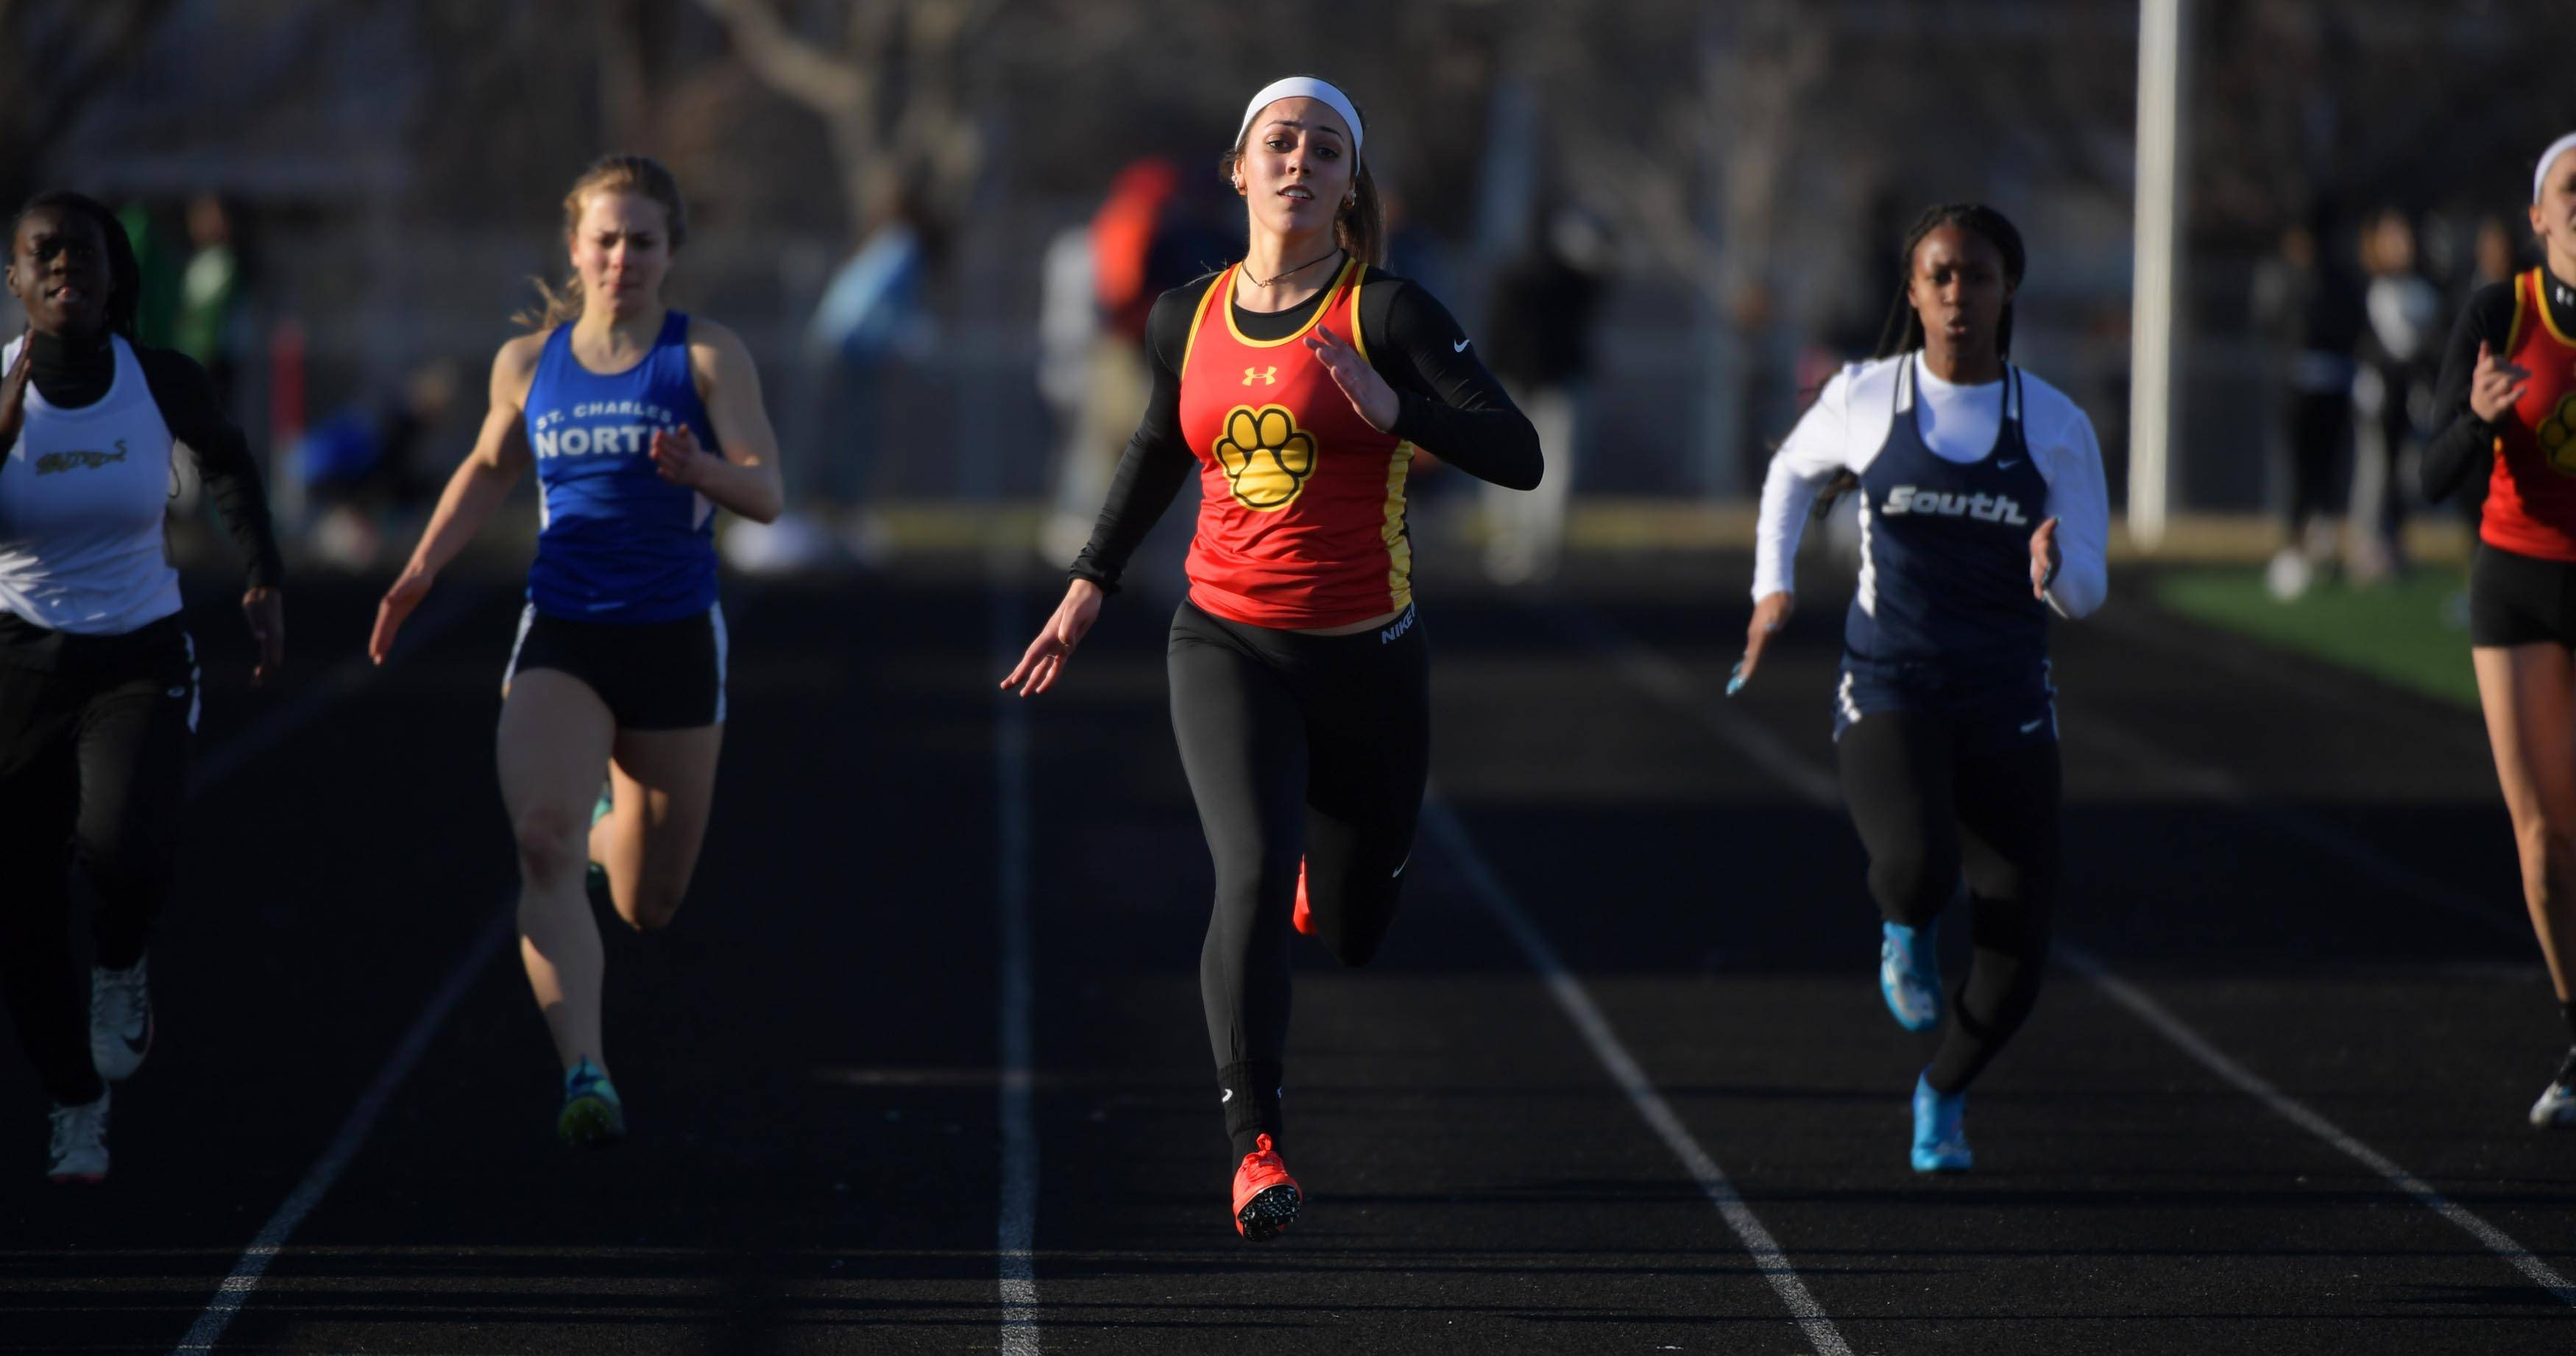 Batavia's Tori Ortiz wins her heat of the 100-meter dash Thursday at the Batavia girls track invitational.